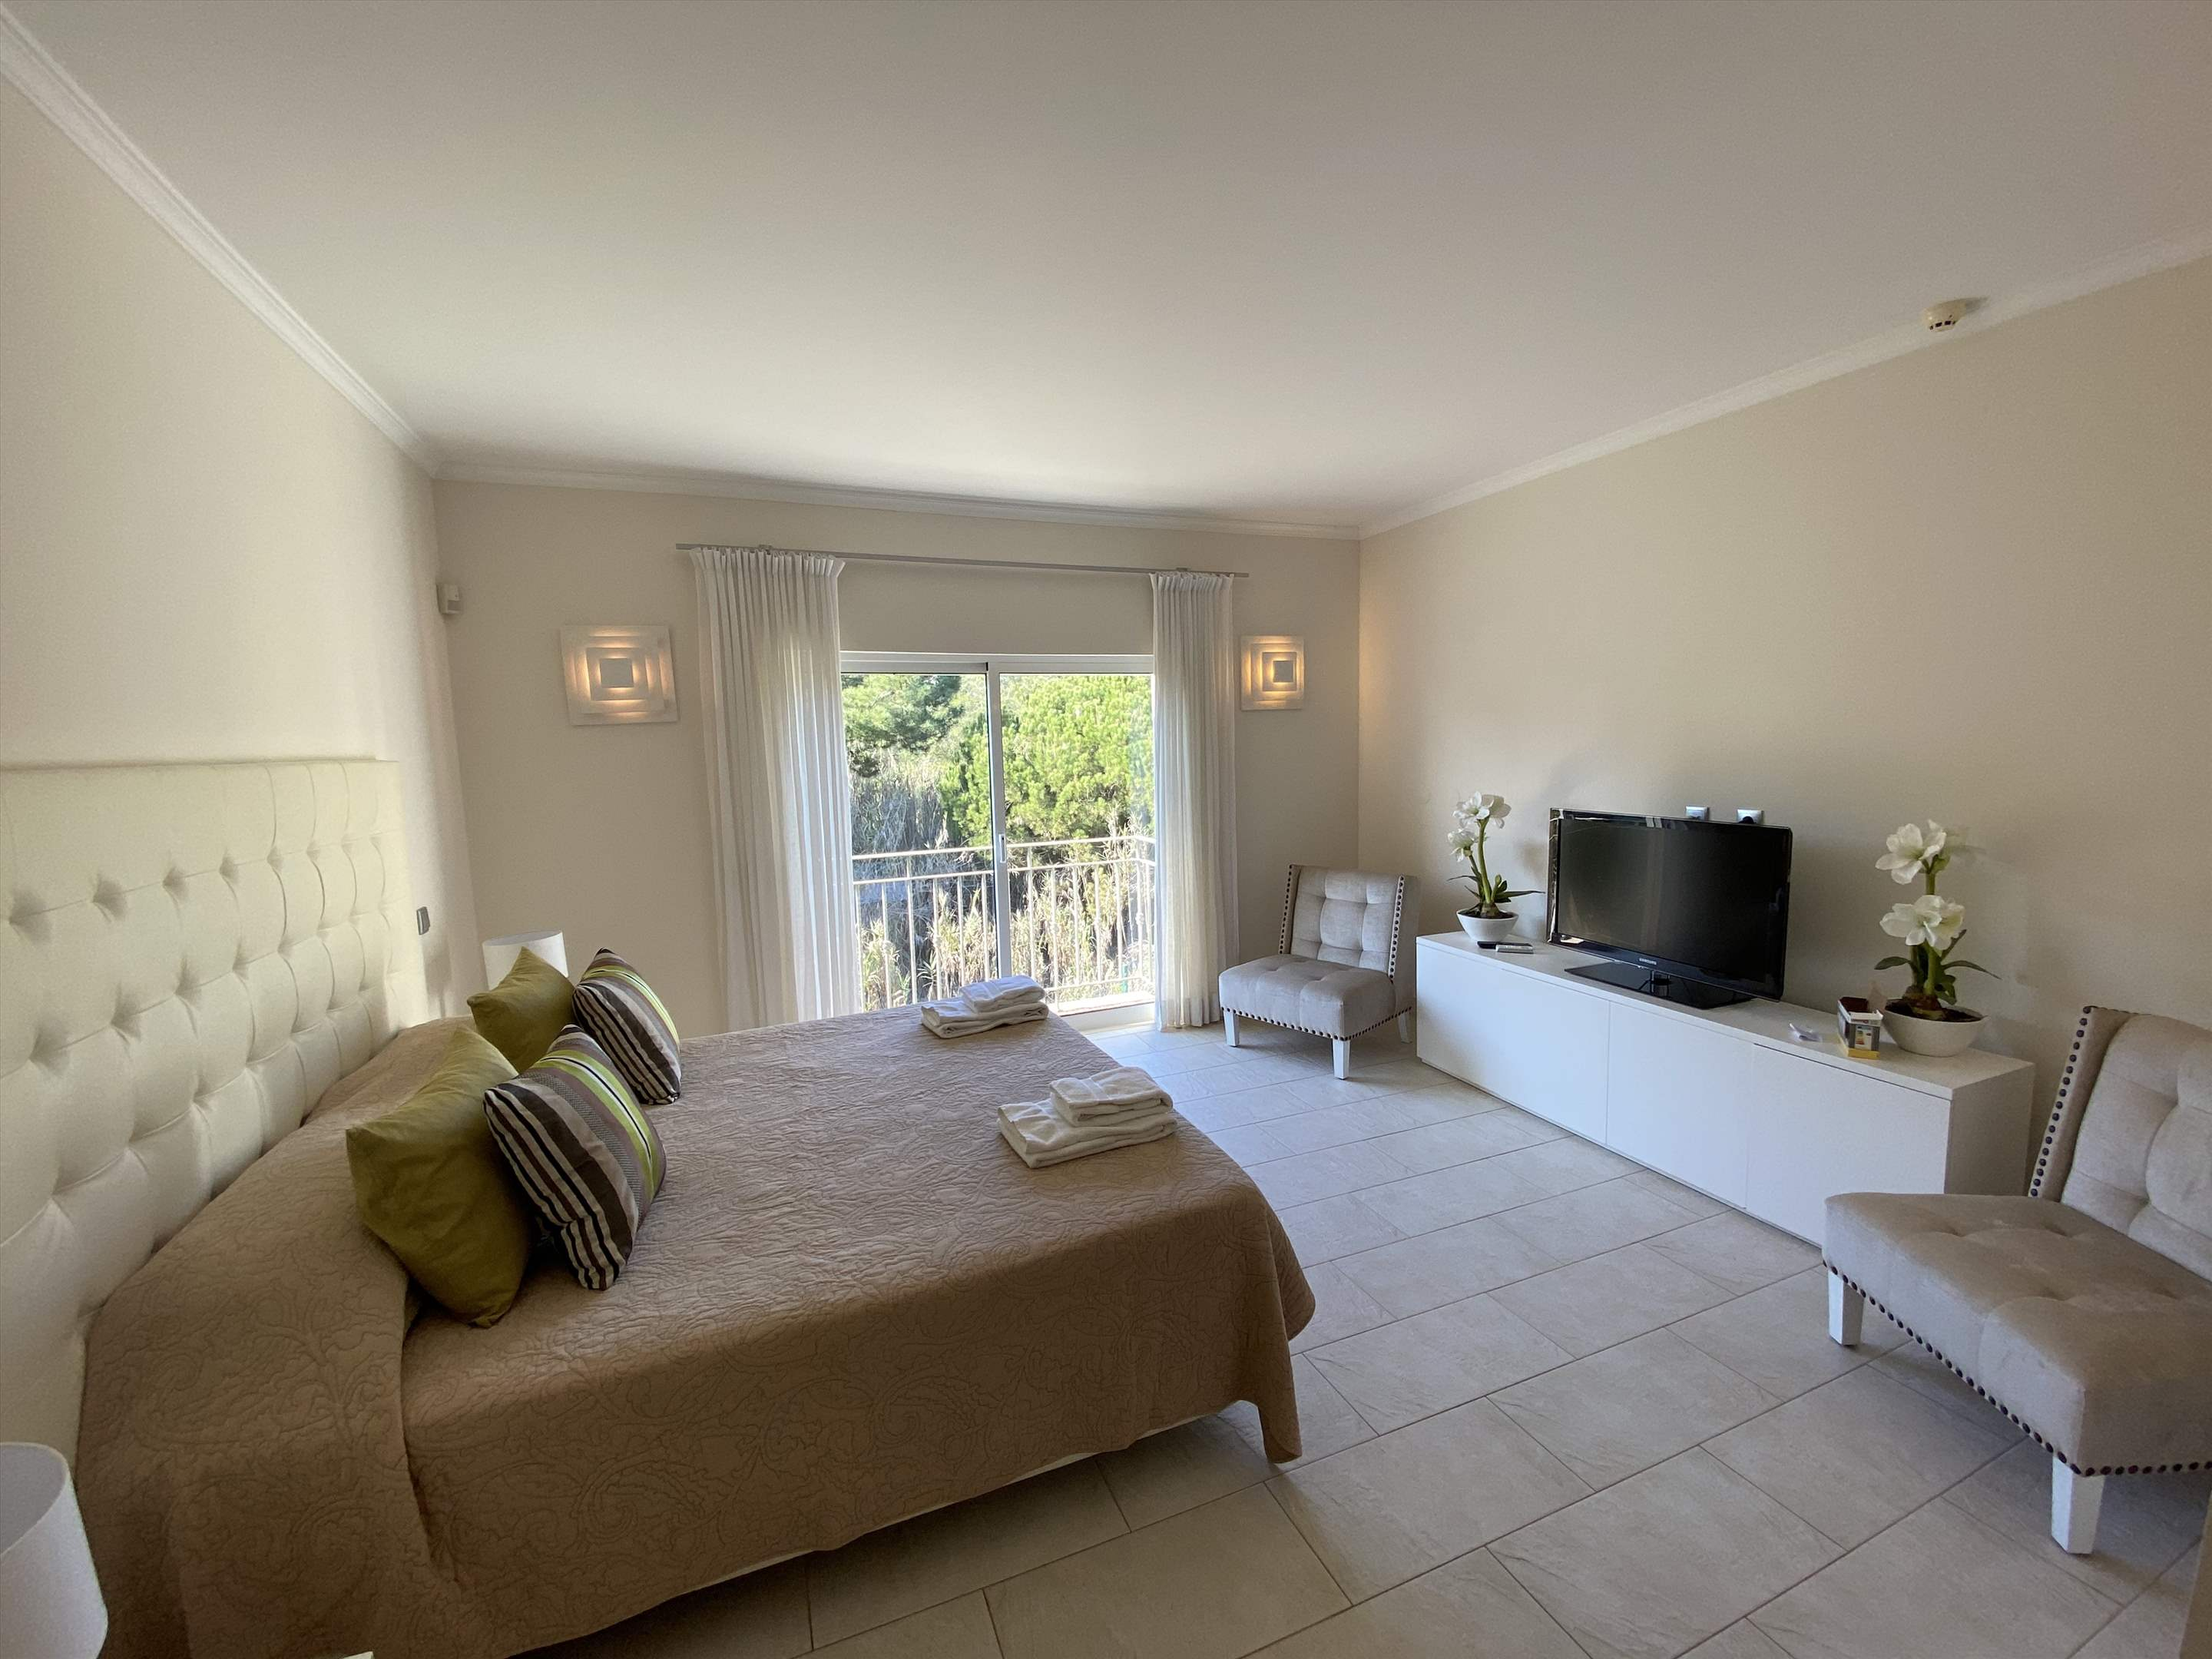 The Ocean Villas, 5 bedroom villa in Gale, Vale da Parra and Guia, Algarve Photo #20